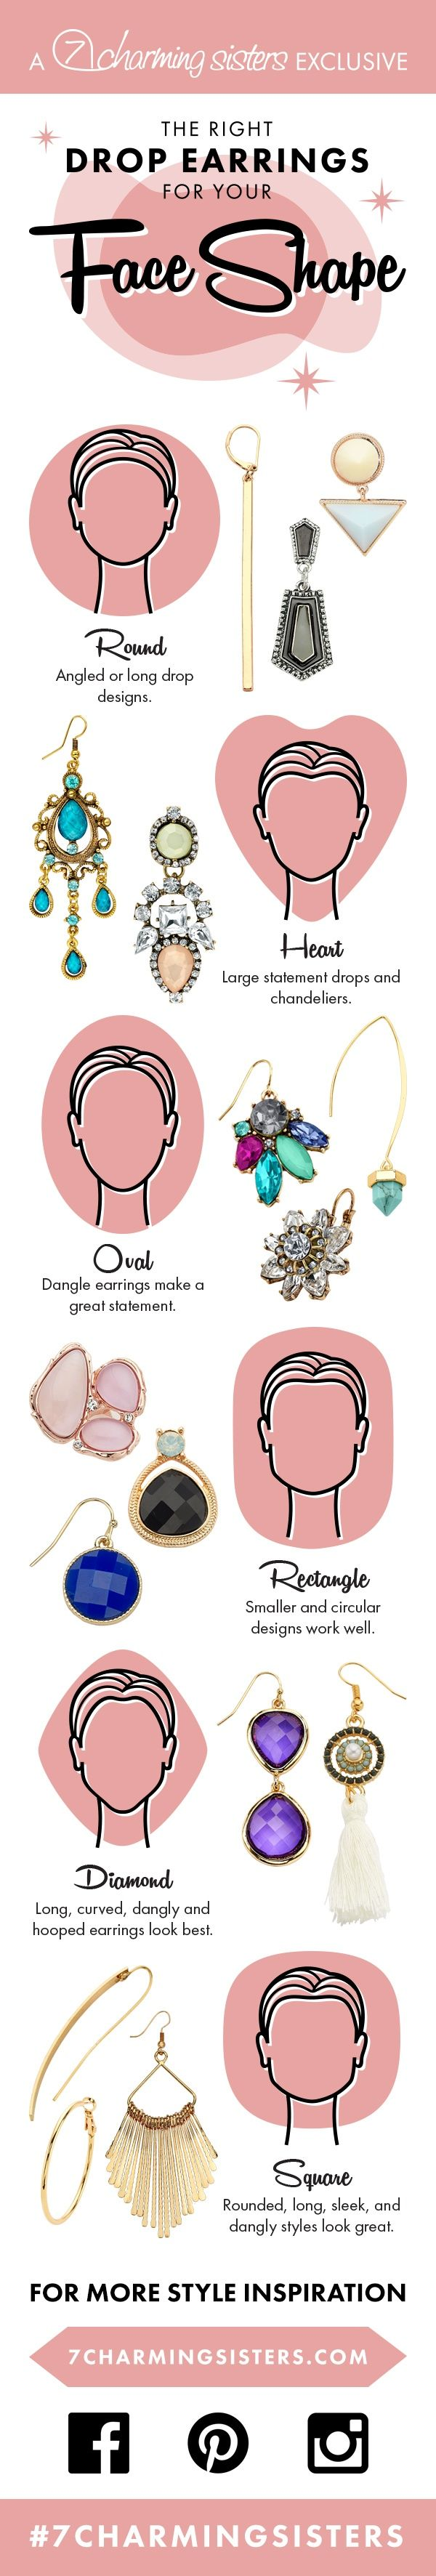 #Earrings for face shape #infographic #faceshape #jewelryforfaceshape…